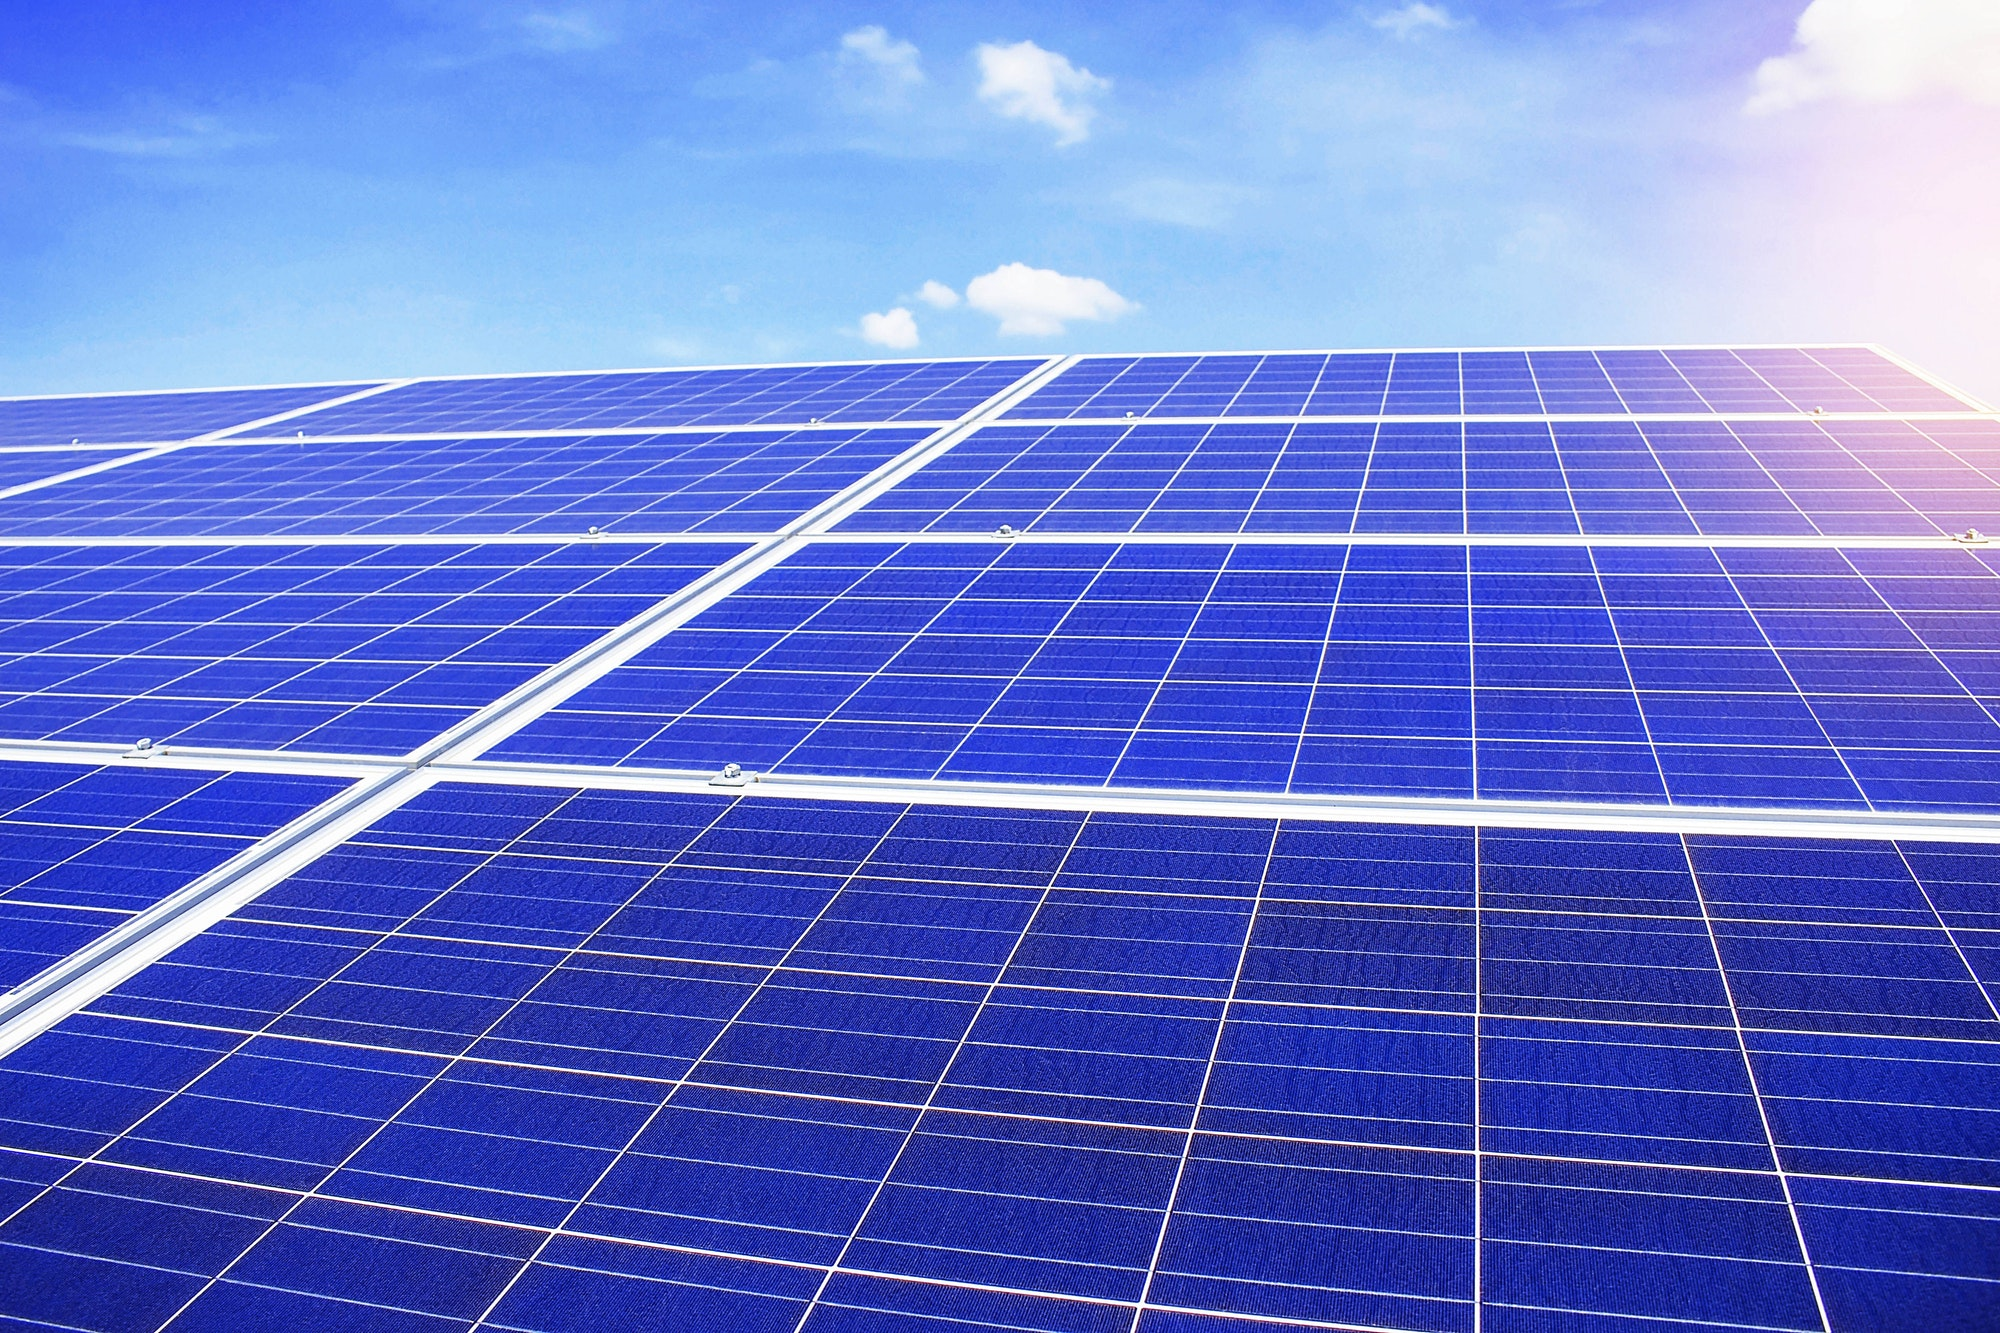 solar panels with the blue sky